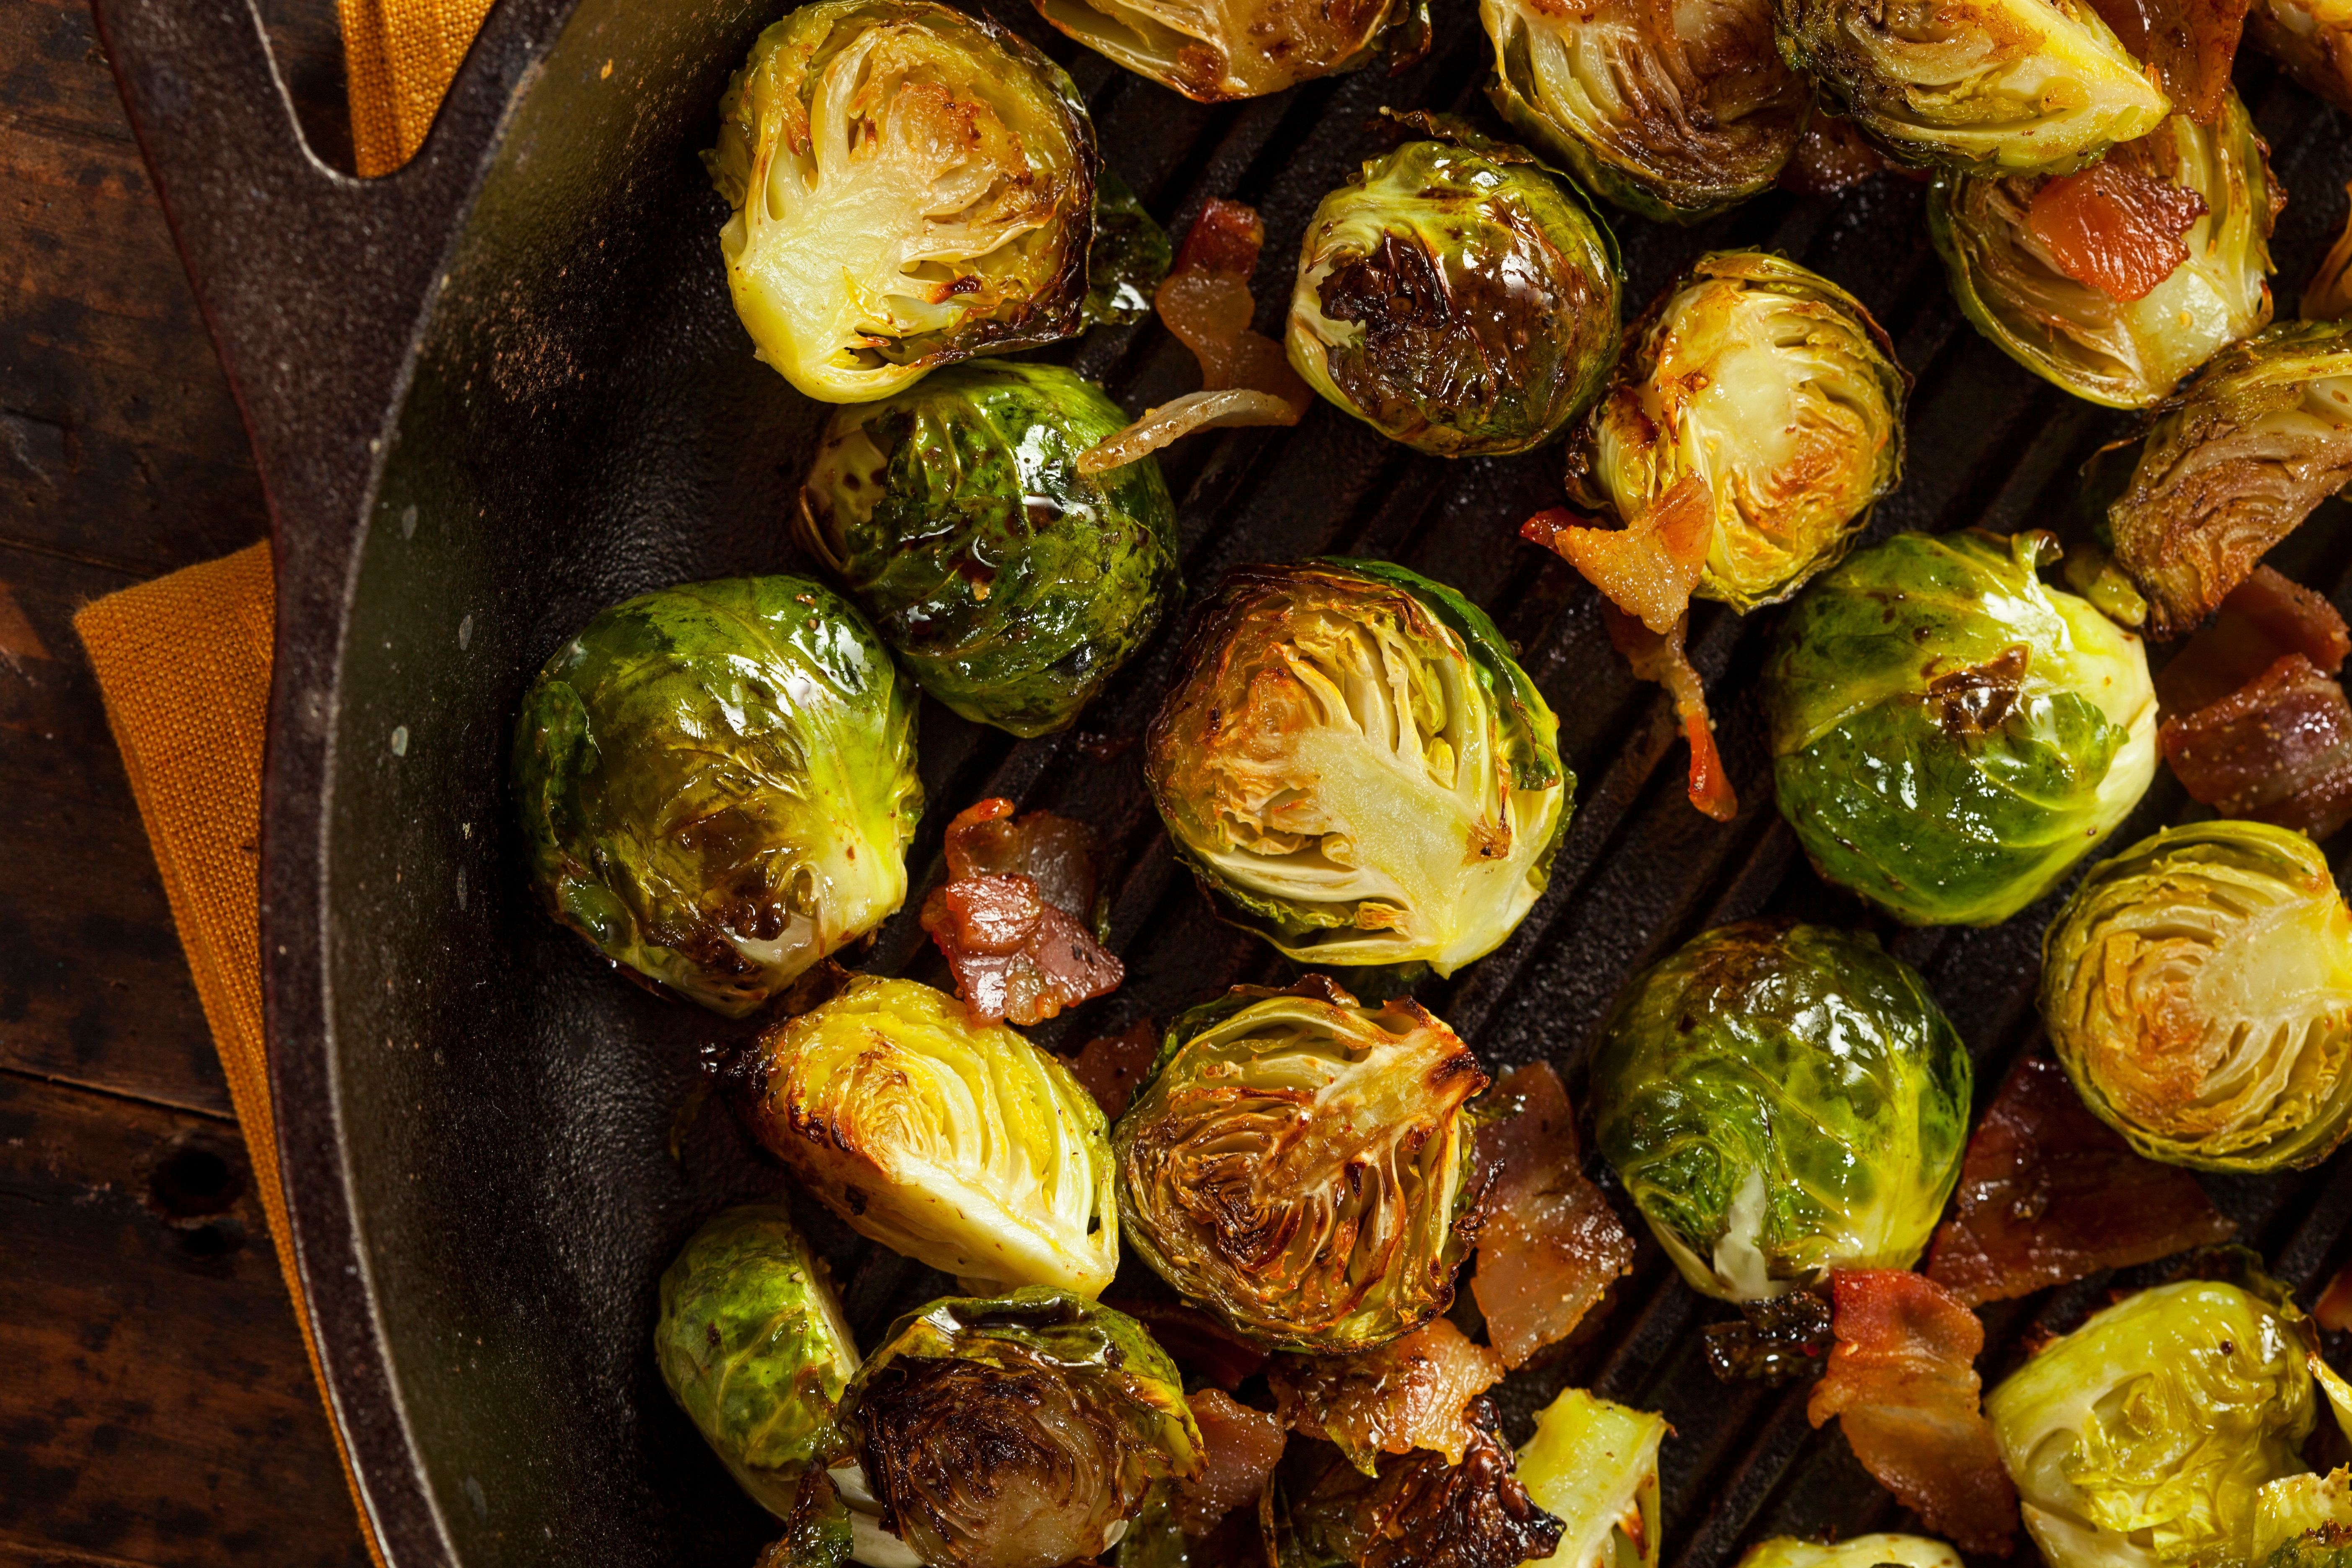 How do you make brussel sprouts less bitter